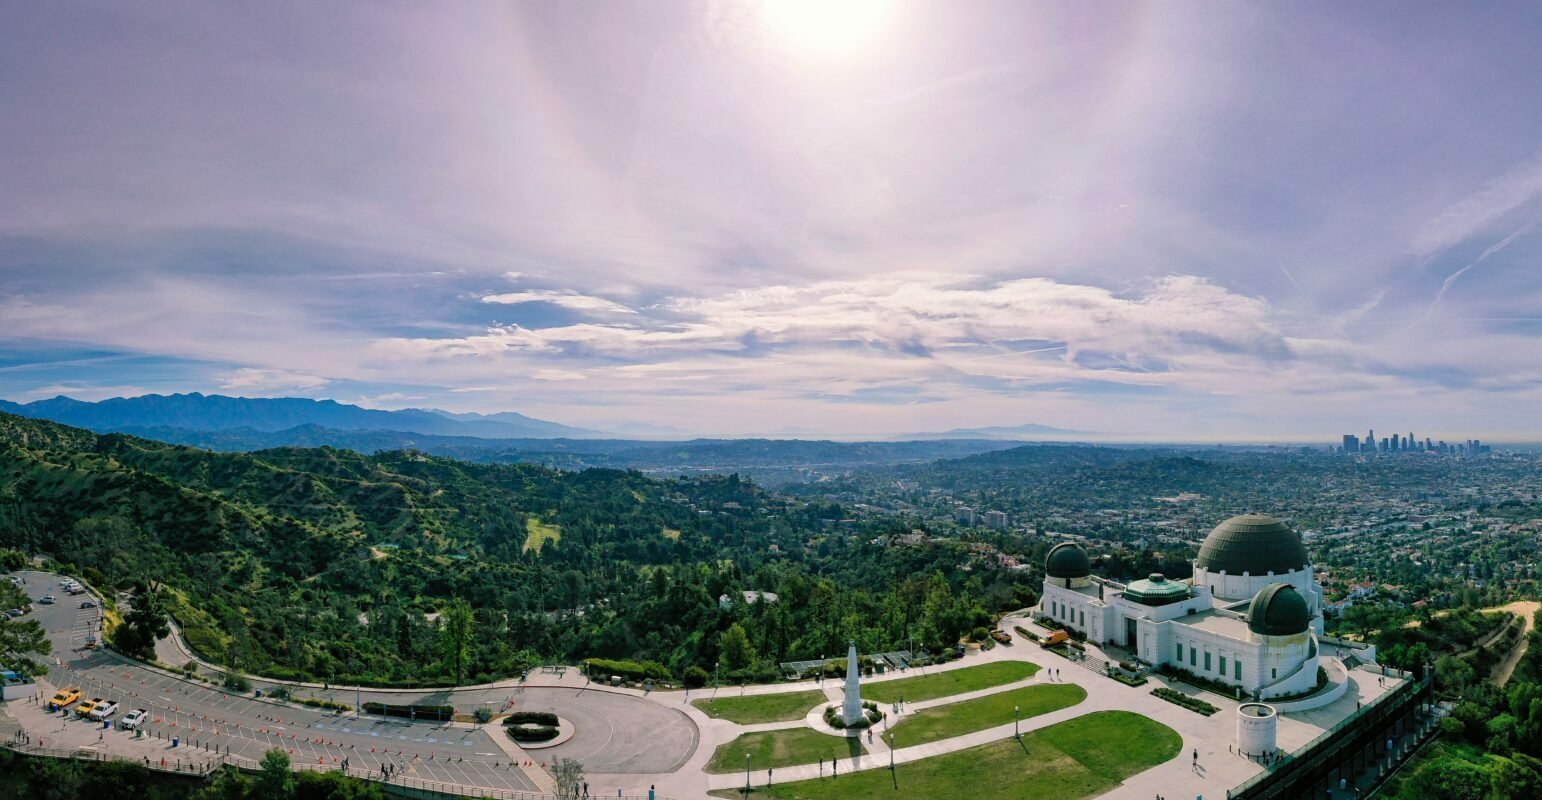 Griffith Observatory panorama. Photo by Cameron Venti (https://unsplash.com/photos/s8OpM3WDGL0)